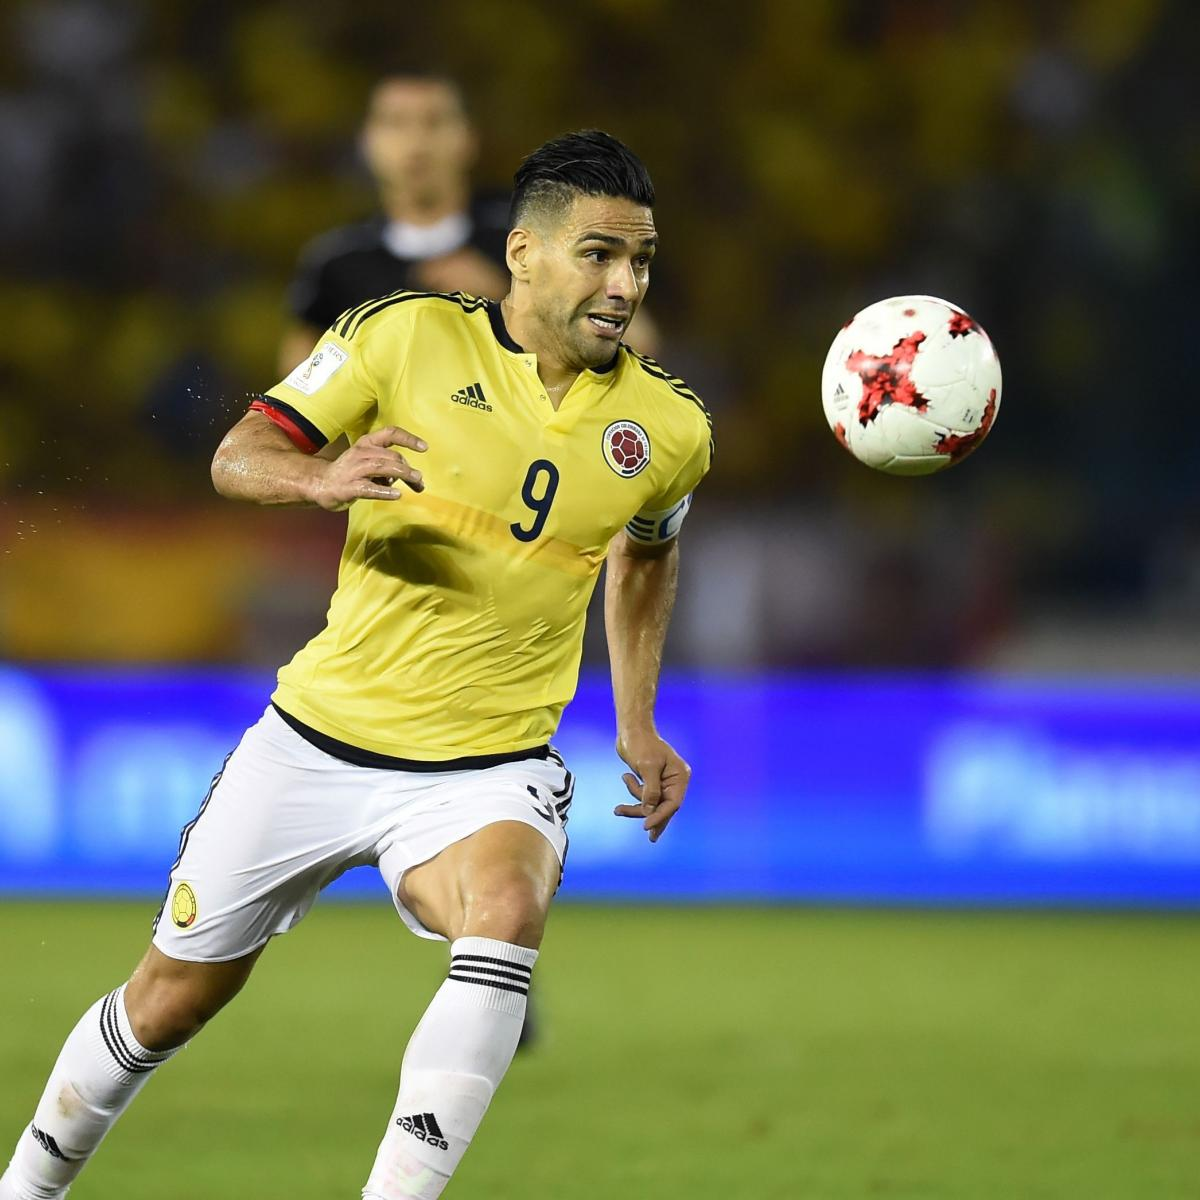 Radamel Falcao Denies Colombia 'Pact' with Peru in World Cup Qualifier